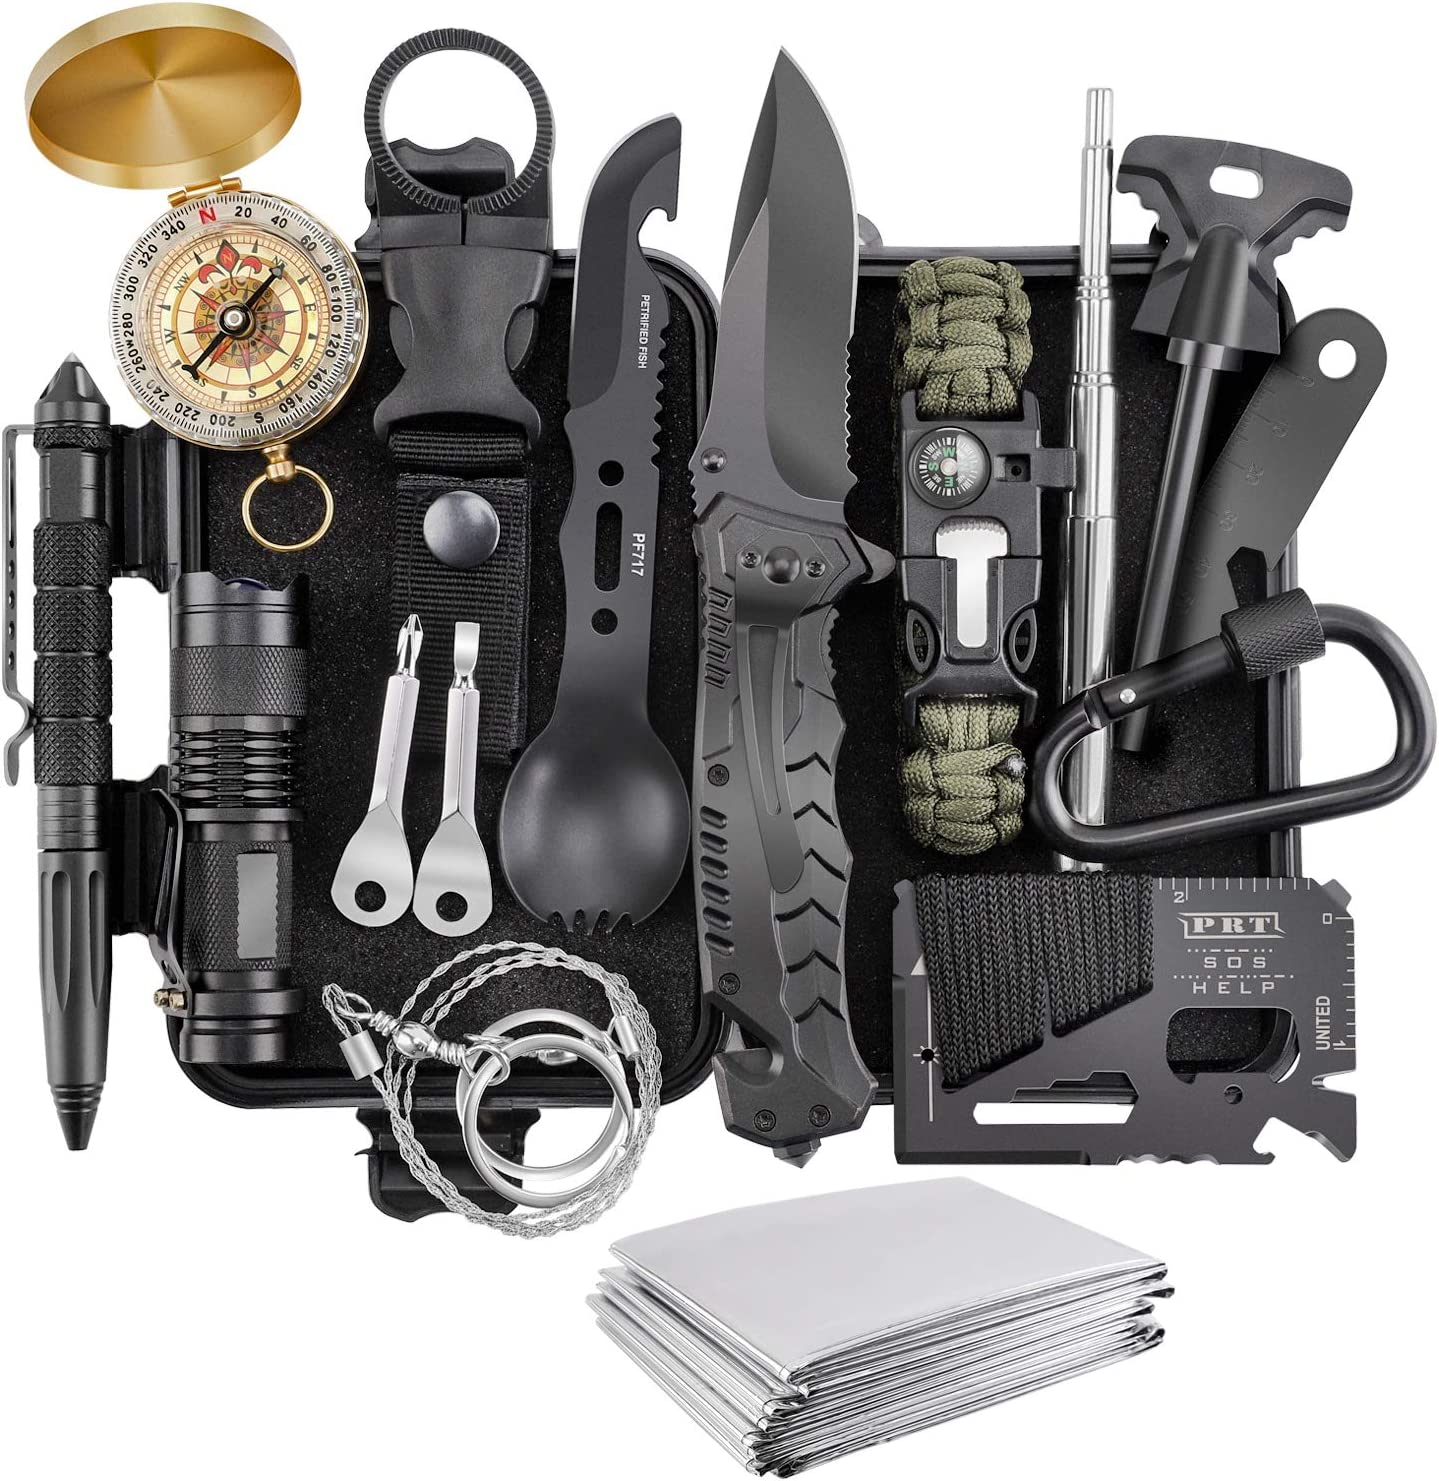 Amazon.com: Survival Kit, Verifygear 17 in 1 Professional Survival Gear  Tool Emergency Tactical First Aid Equipment Supplies Kits for Men Women  Families Hiking Camping Adventures: Sports & Outdoors